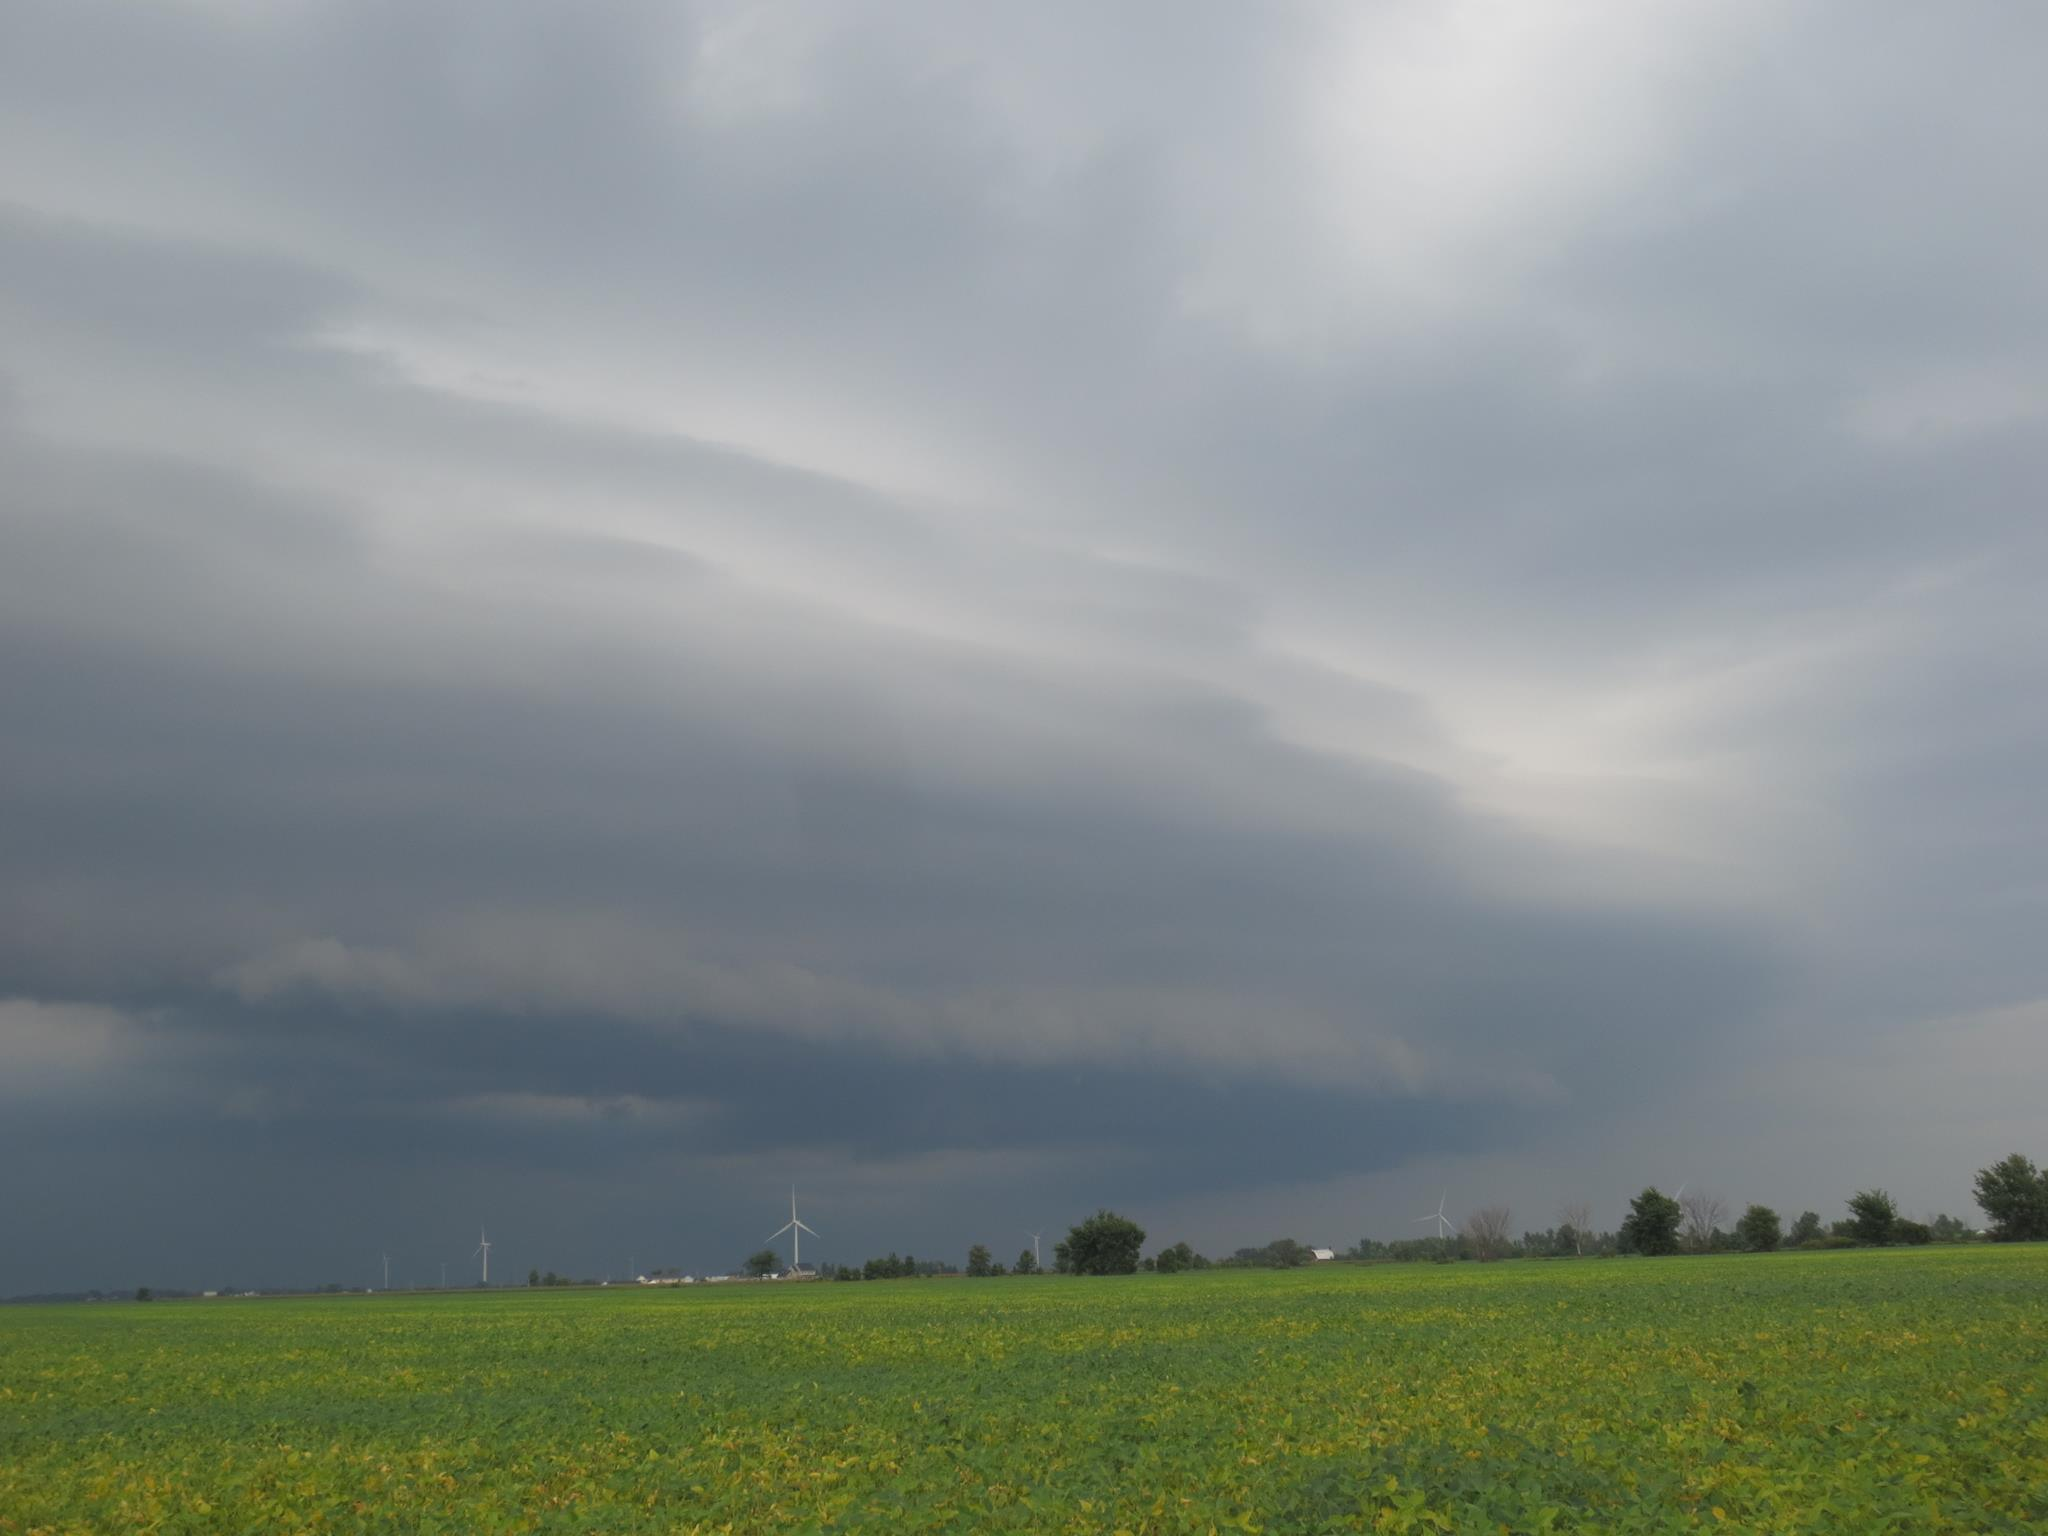 A photo of storm clouds along County Rd. 8 in Essex County on August 26, 2014. (Photo courtesy Monique Thibodeau via BlackburnNews Windsor-Essex Facebook)